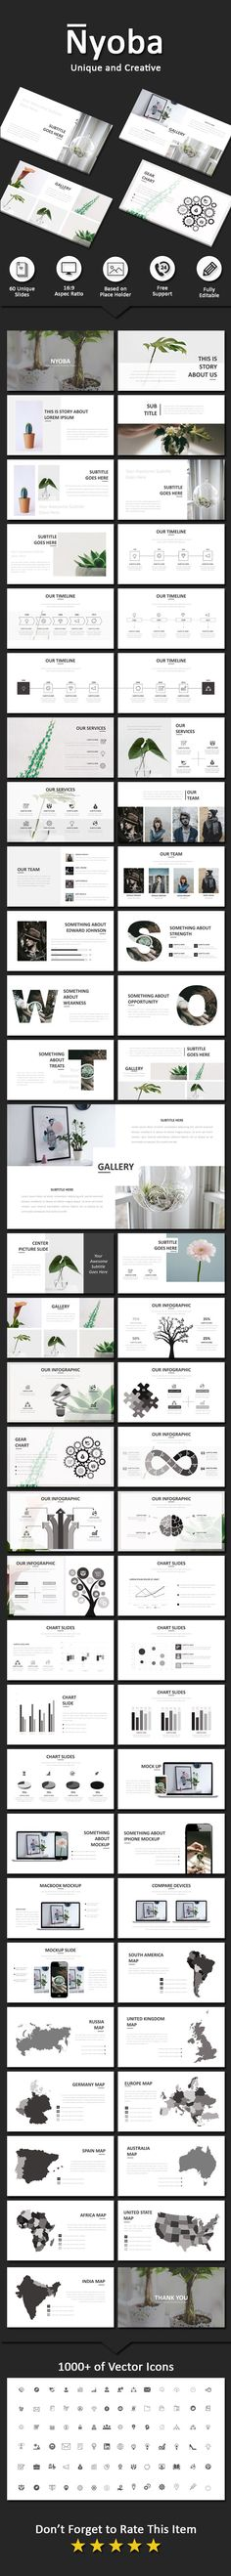 Nyoba Creative Powerpoint - Business #PowerPoint Templates Download here: https://graphicriver.net/item/nyoba-creative-powerpoint/19739800?ref=alena994